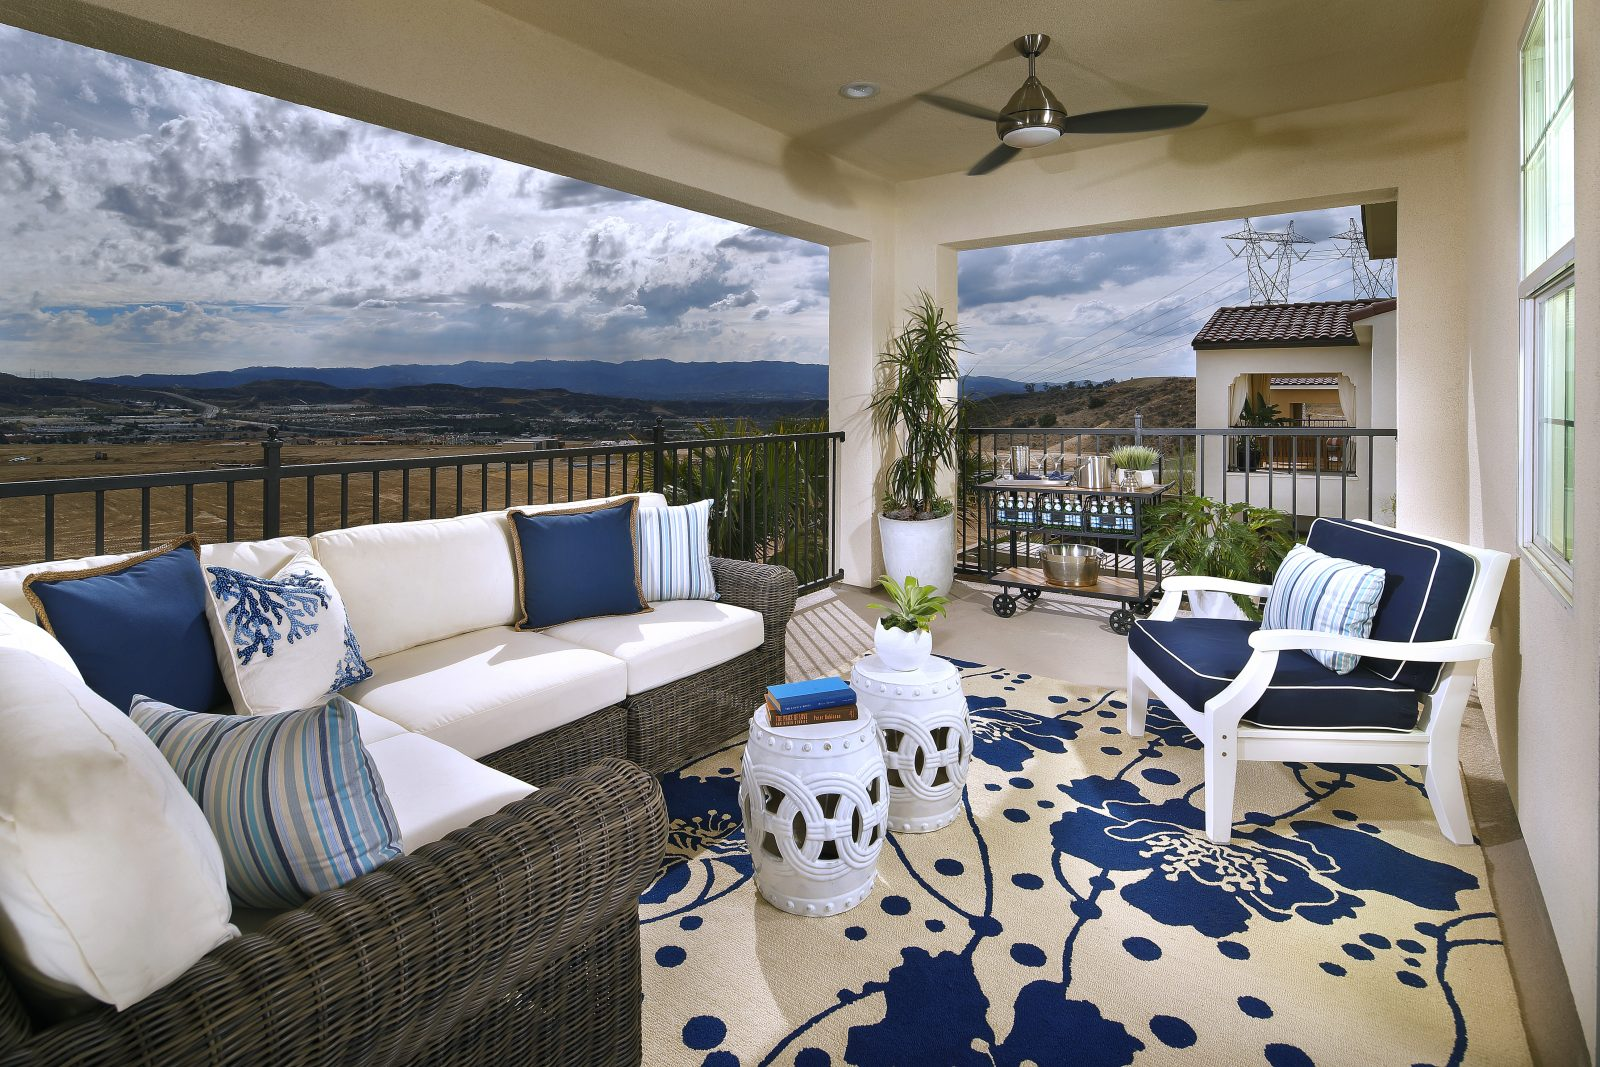 Santa Clarita CA Homes for Sale with a View